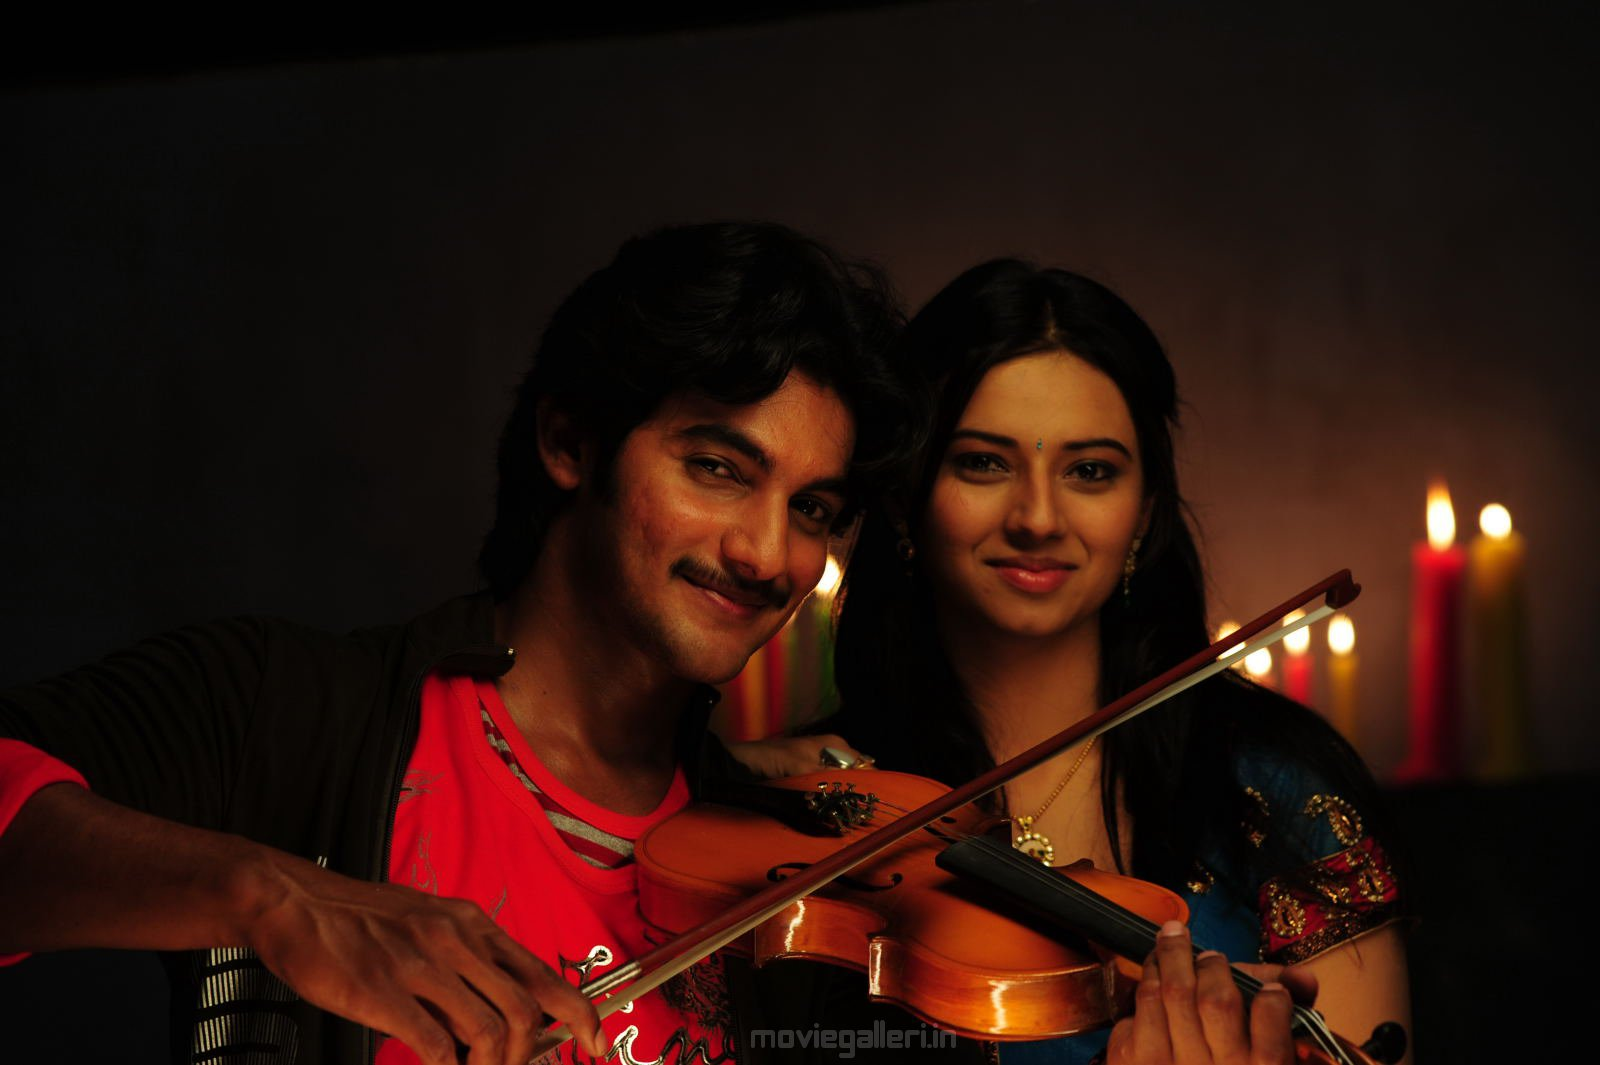 http://4.bp.blogspot.com/_6Vr9b9OoZno/TNzdPX0uqvI/AAAAAAAADmw/zNE00MKibLw/s1600/prema_kavali_movie_stills_wallpapers_10.JPG